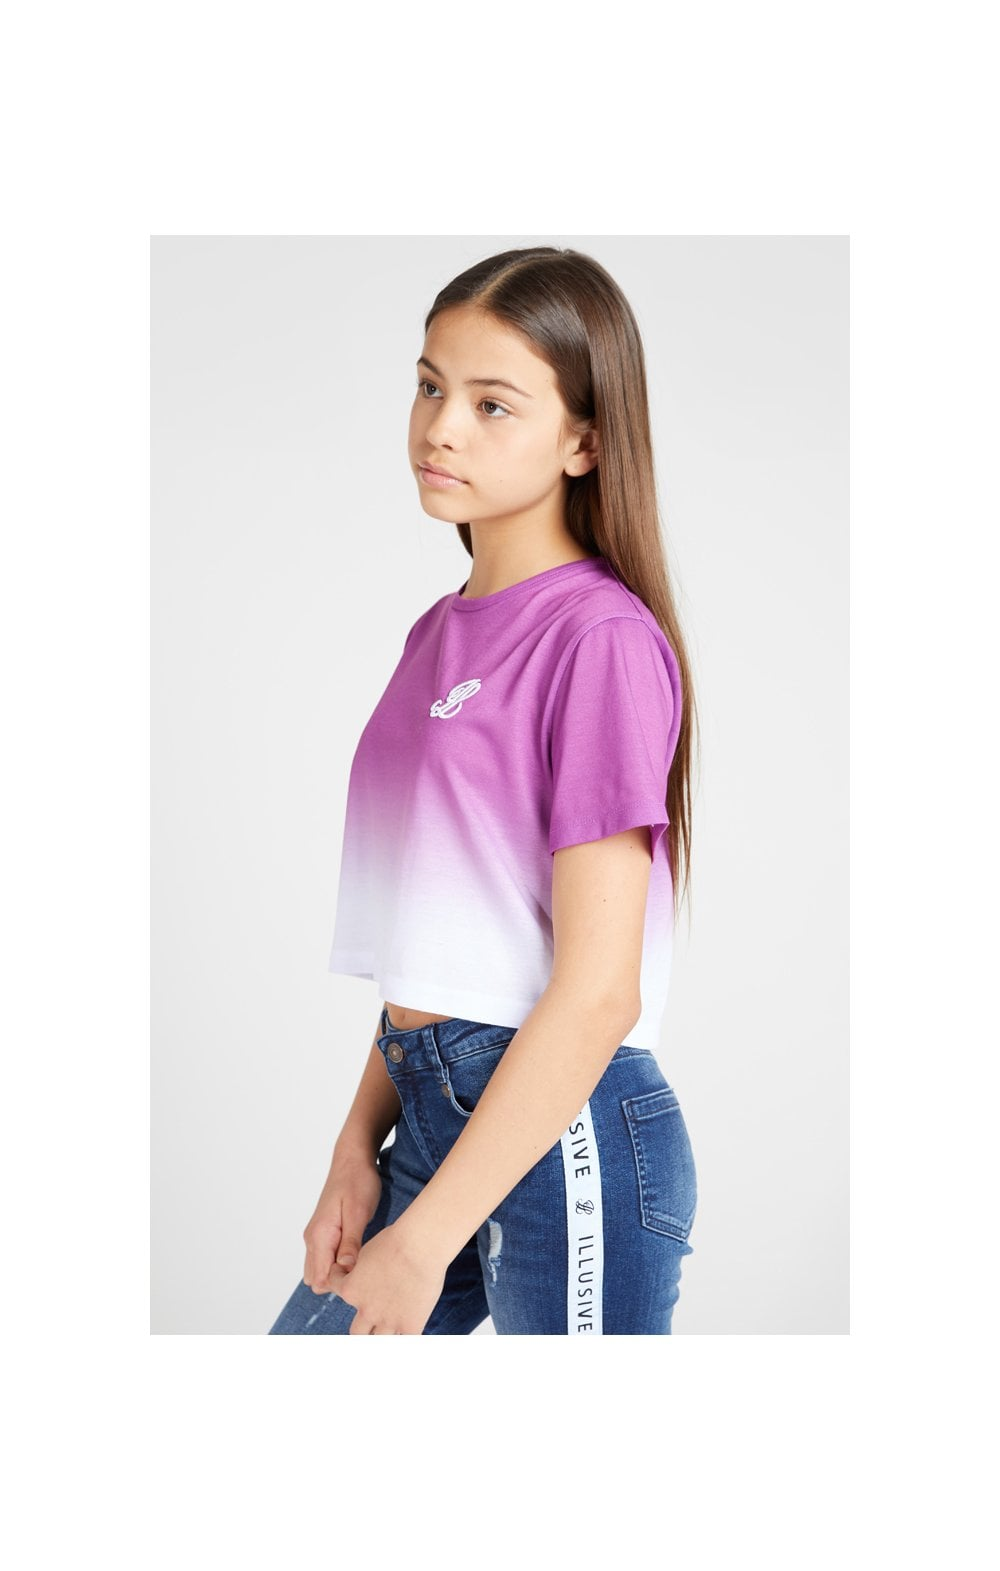 Load image into Gallery viewer, Illusive London Crop Fade Tee - Pink & White (2)